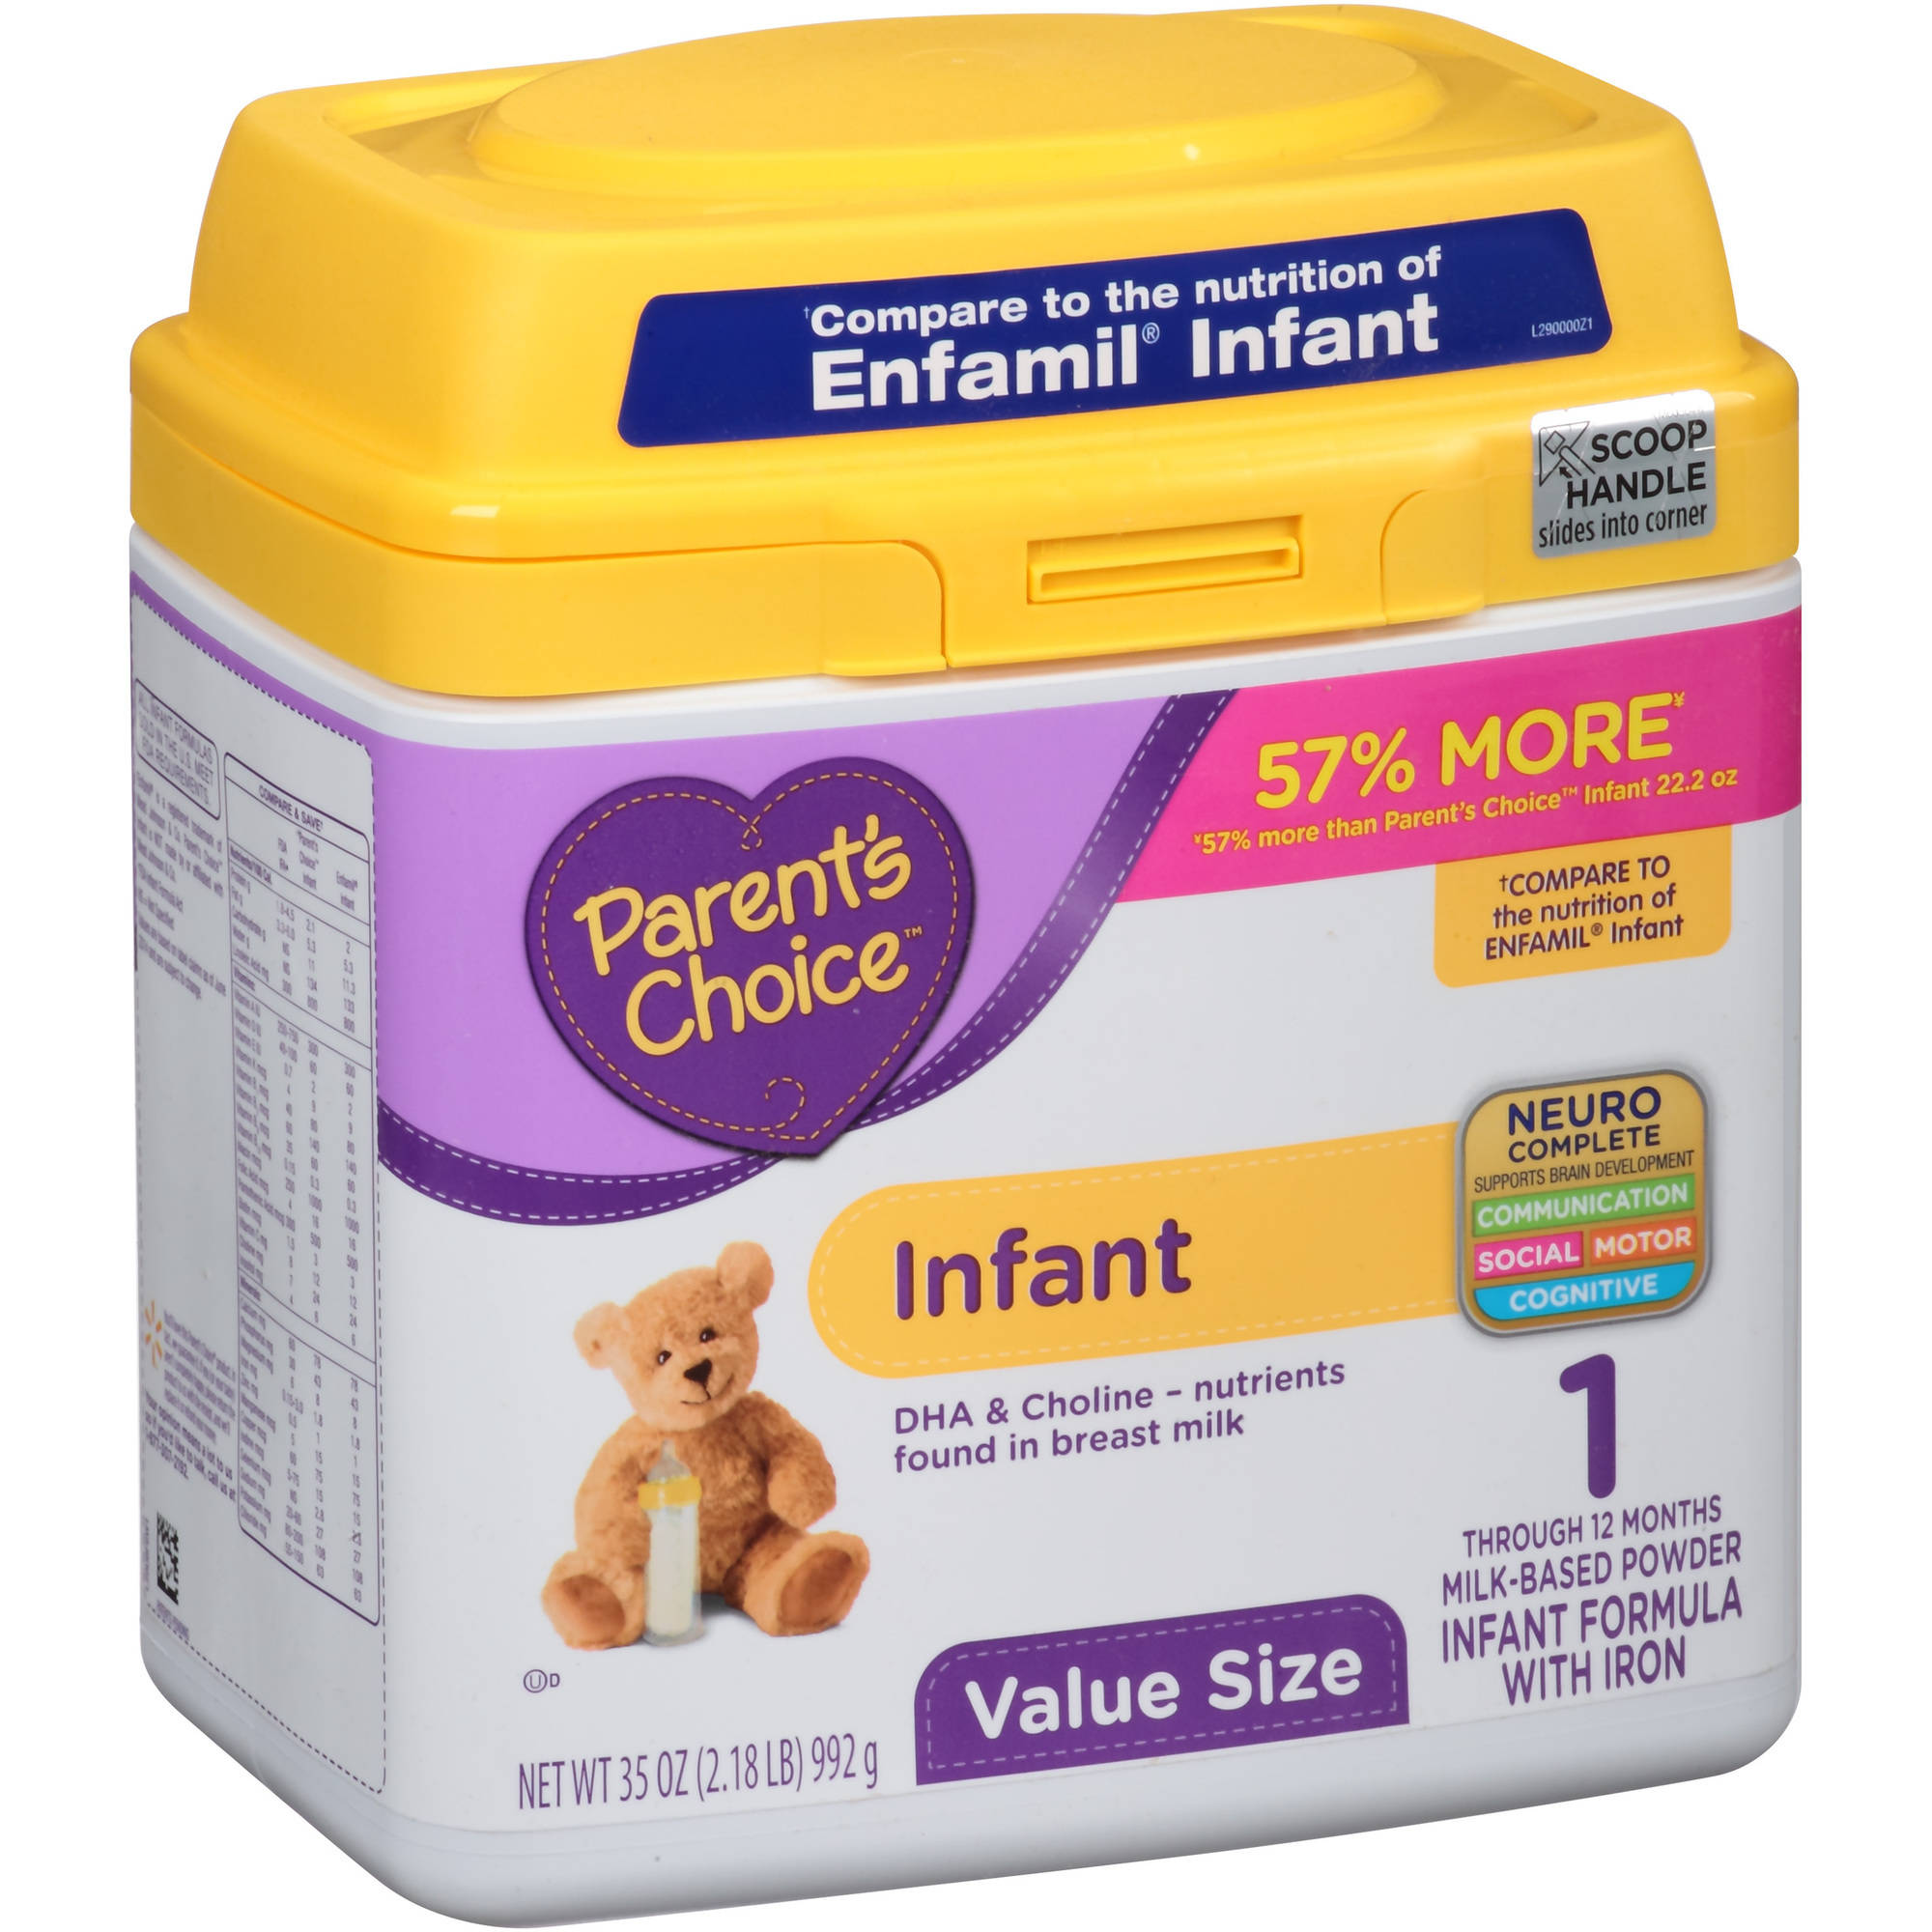 Parent's Choice Infant Powder Formula with Iron, 35oz (Pack of 4)